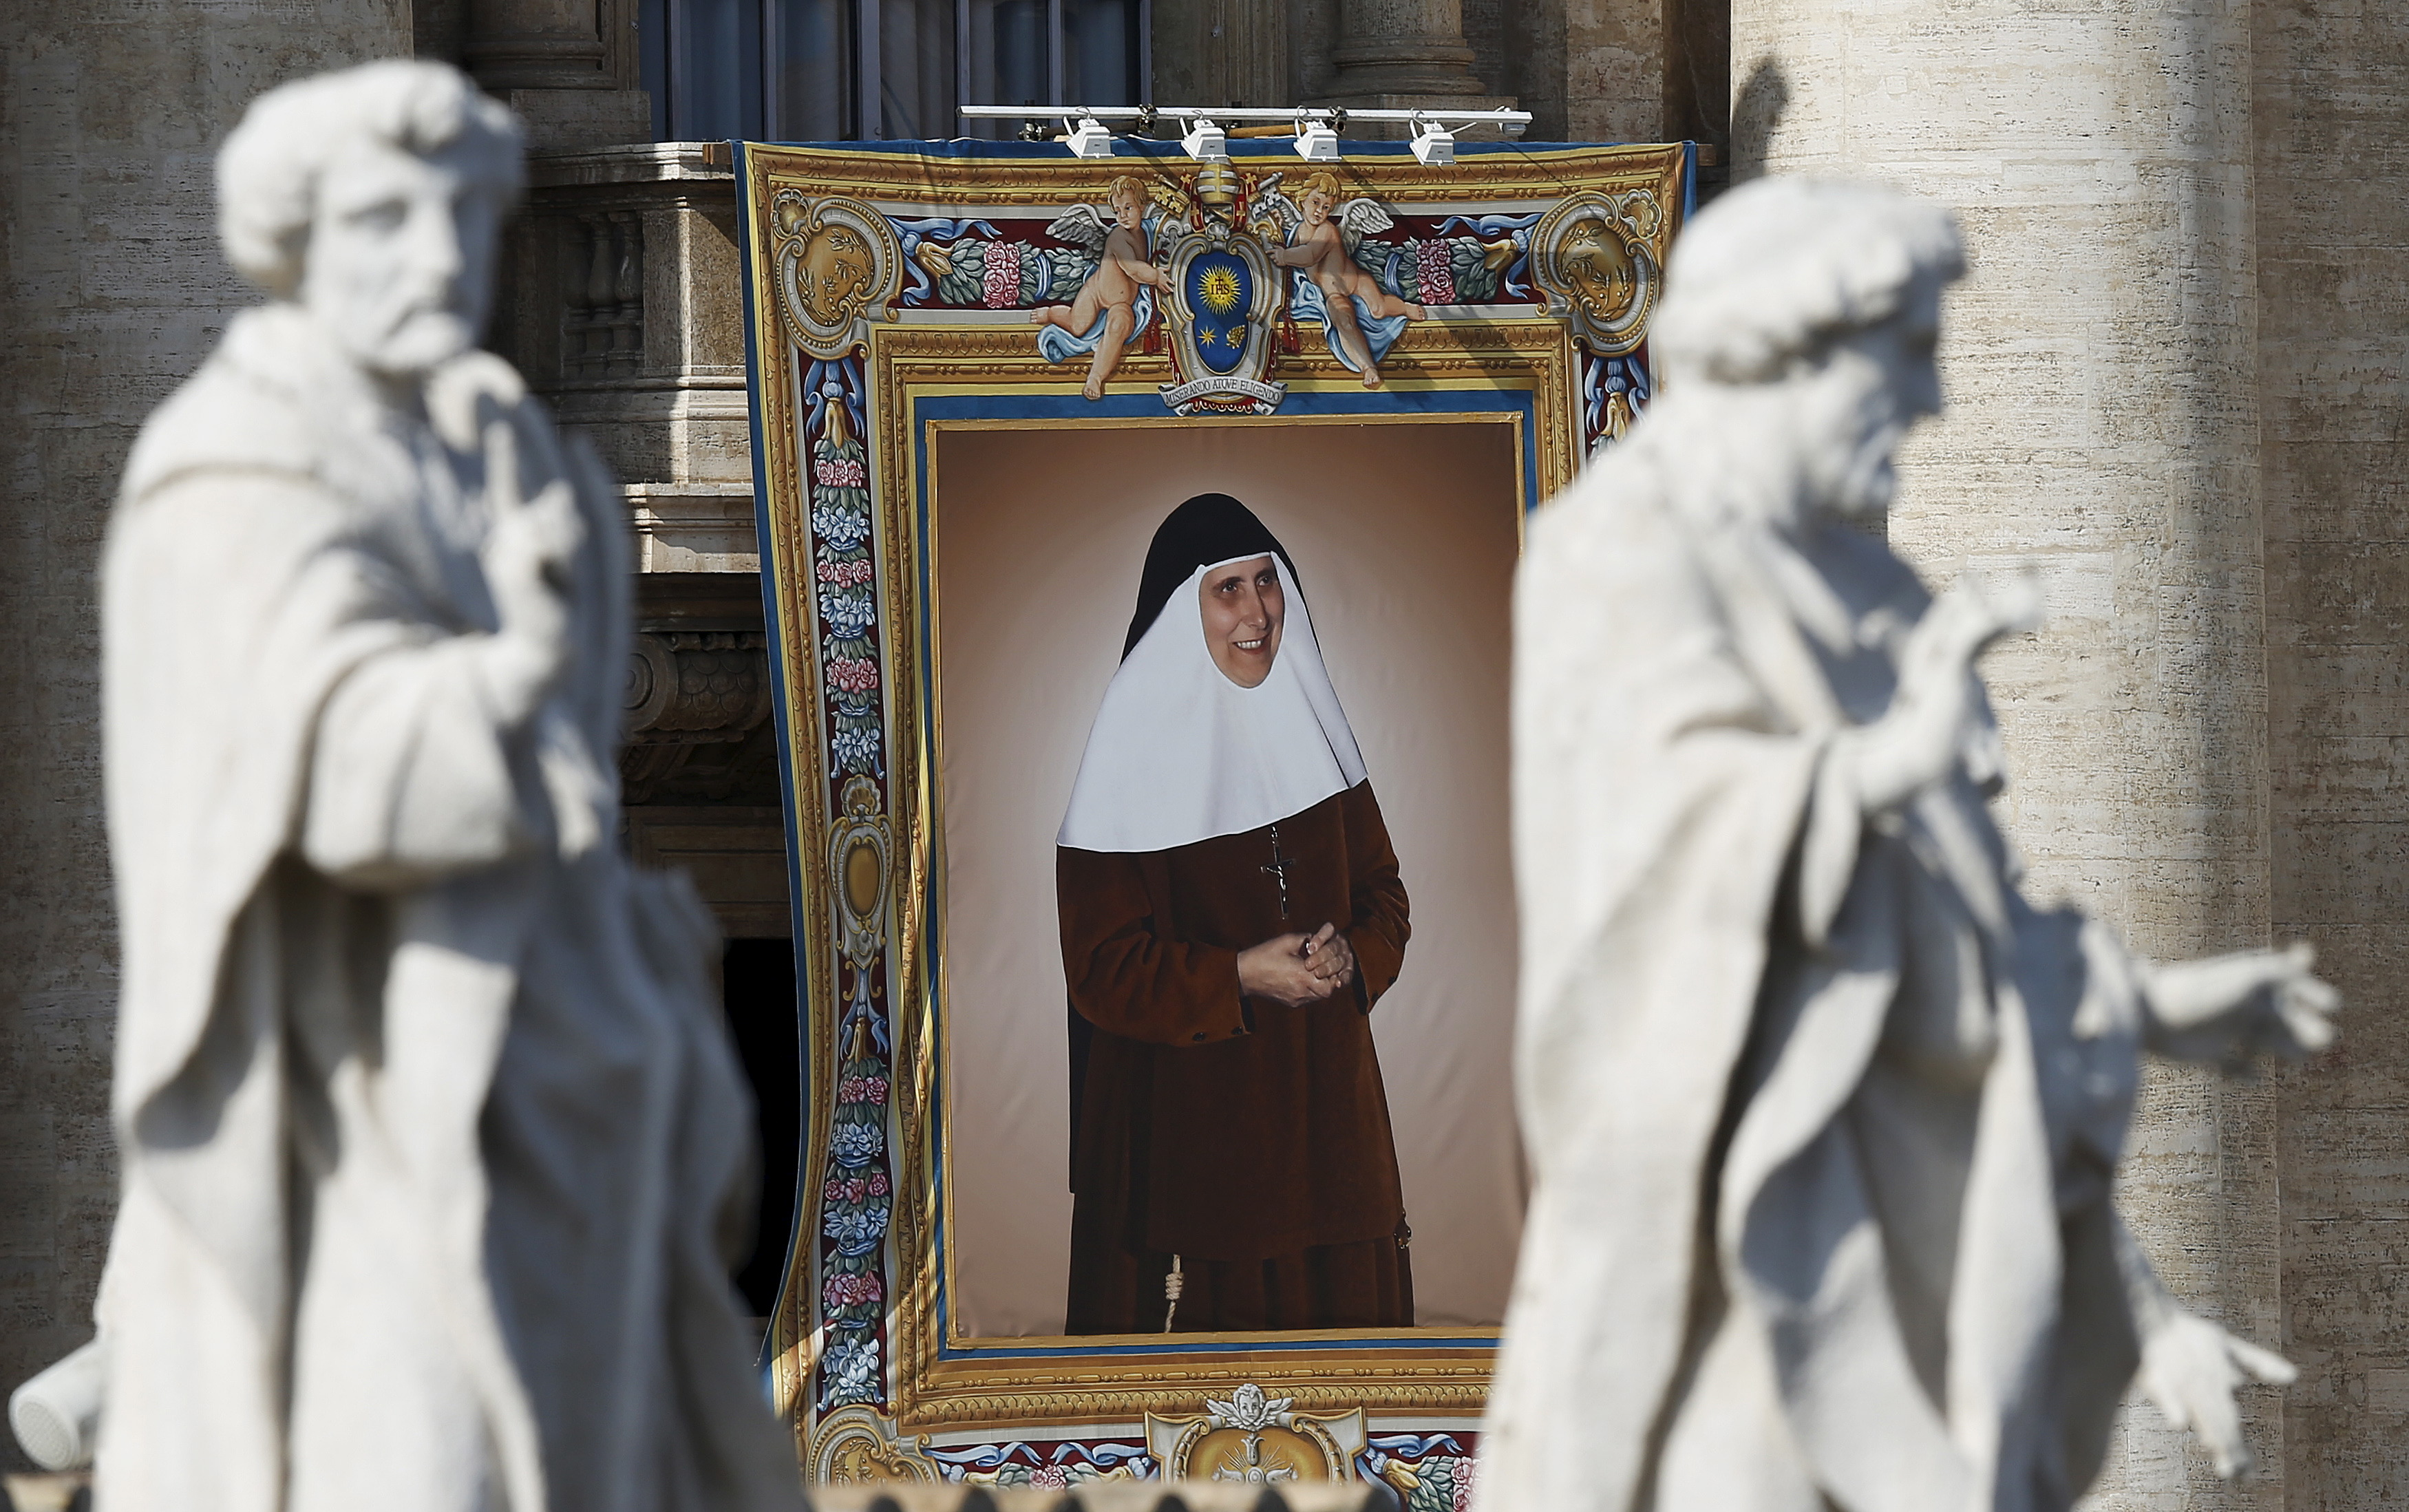 A tapestry showing Saint Mary of the Immaculate Conception hangs from a balcony as Pope Francis leads the mass for a canonization in Saint Peter's Square at the Vatican, Oct. 18, 2015.